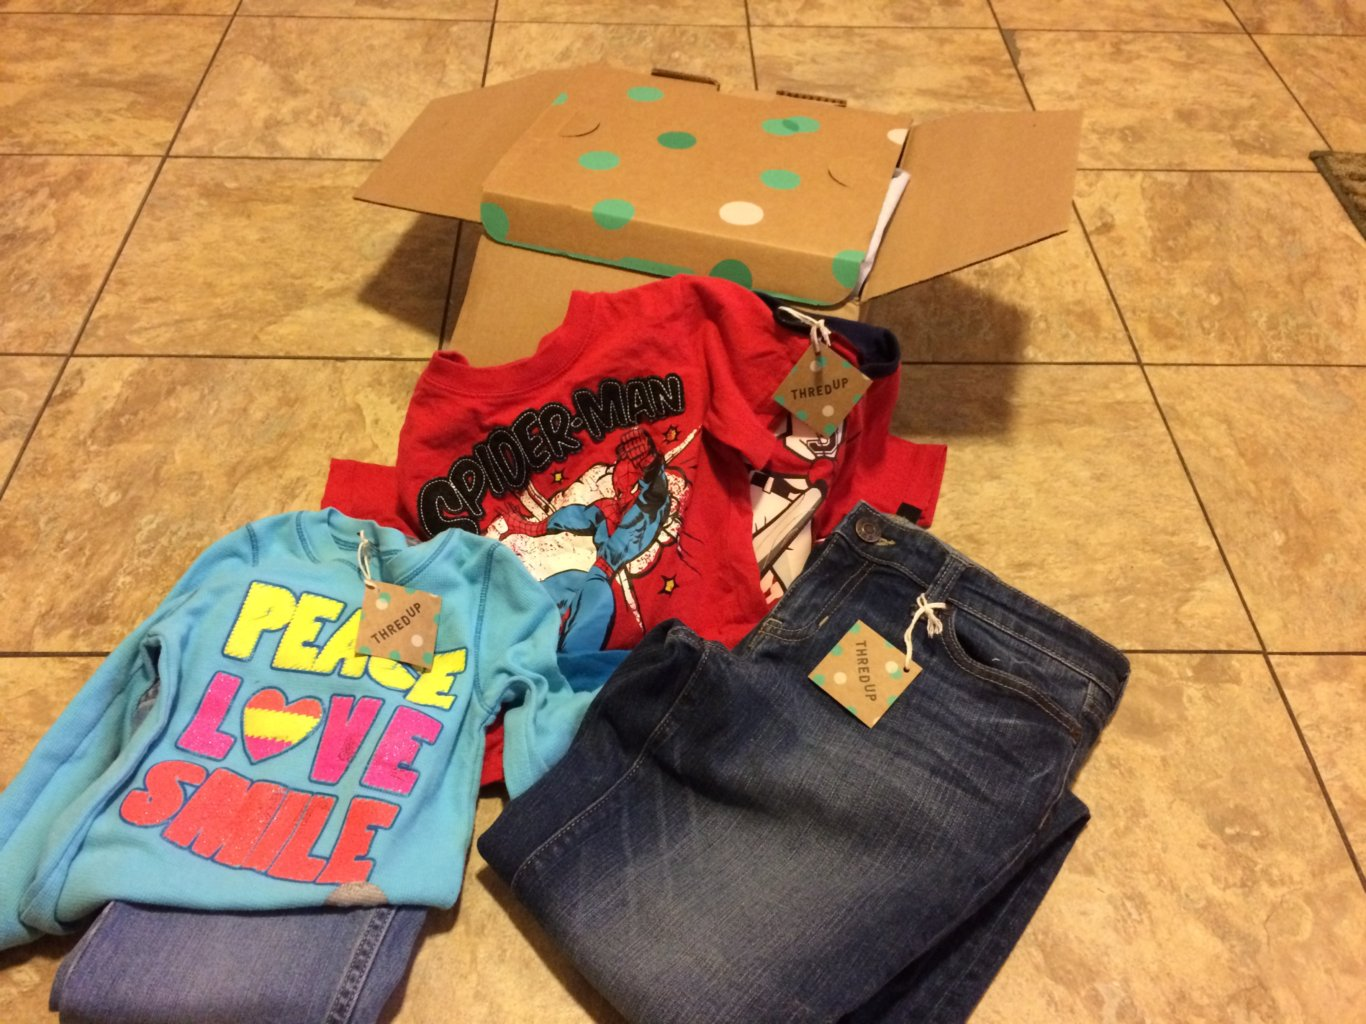 Clothes from thredUp, an online consignment store.